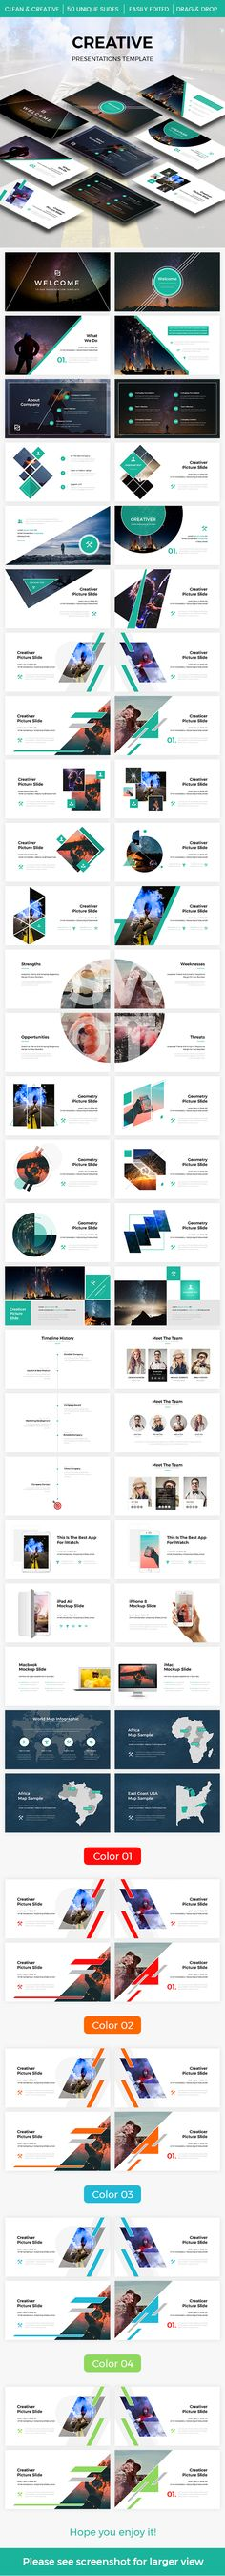 Creative 2.0 Powerpoint Template 2017 - Creative #PowerPoint Templates